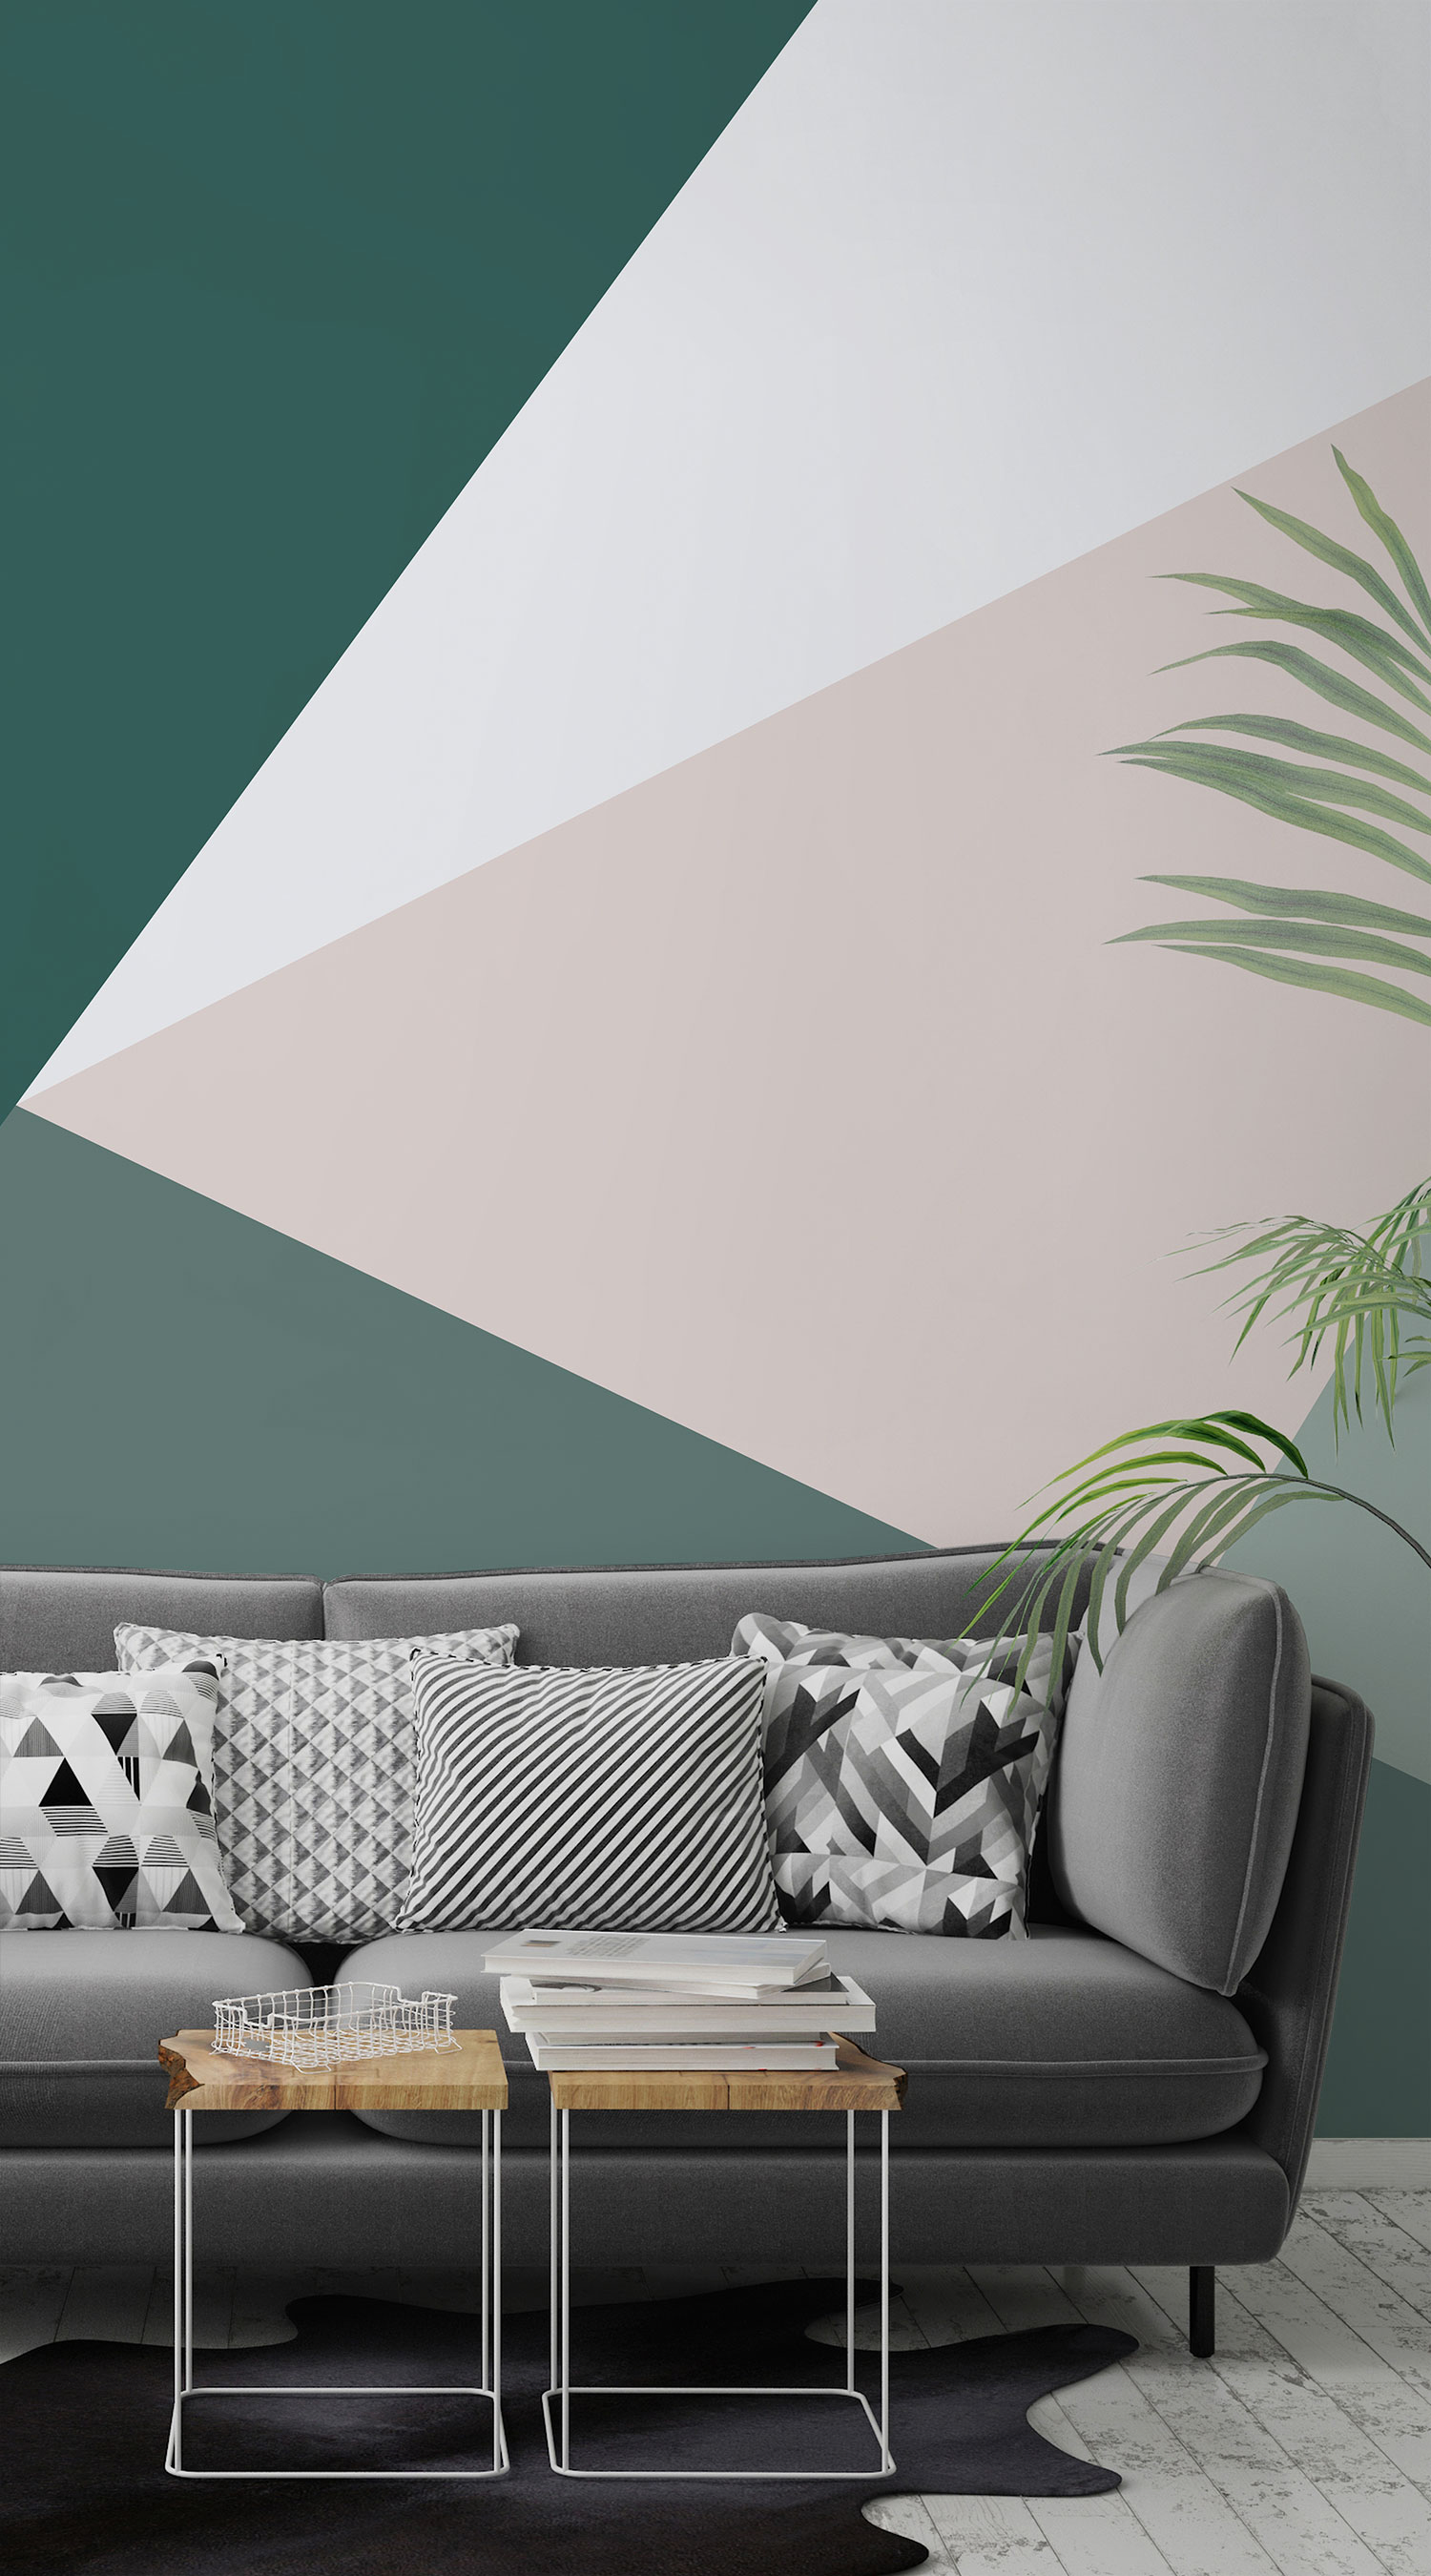 Modernise Your Home With These Cutting Edge Geometric